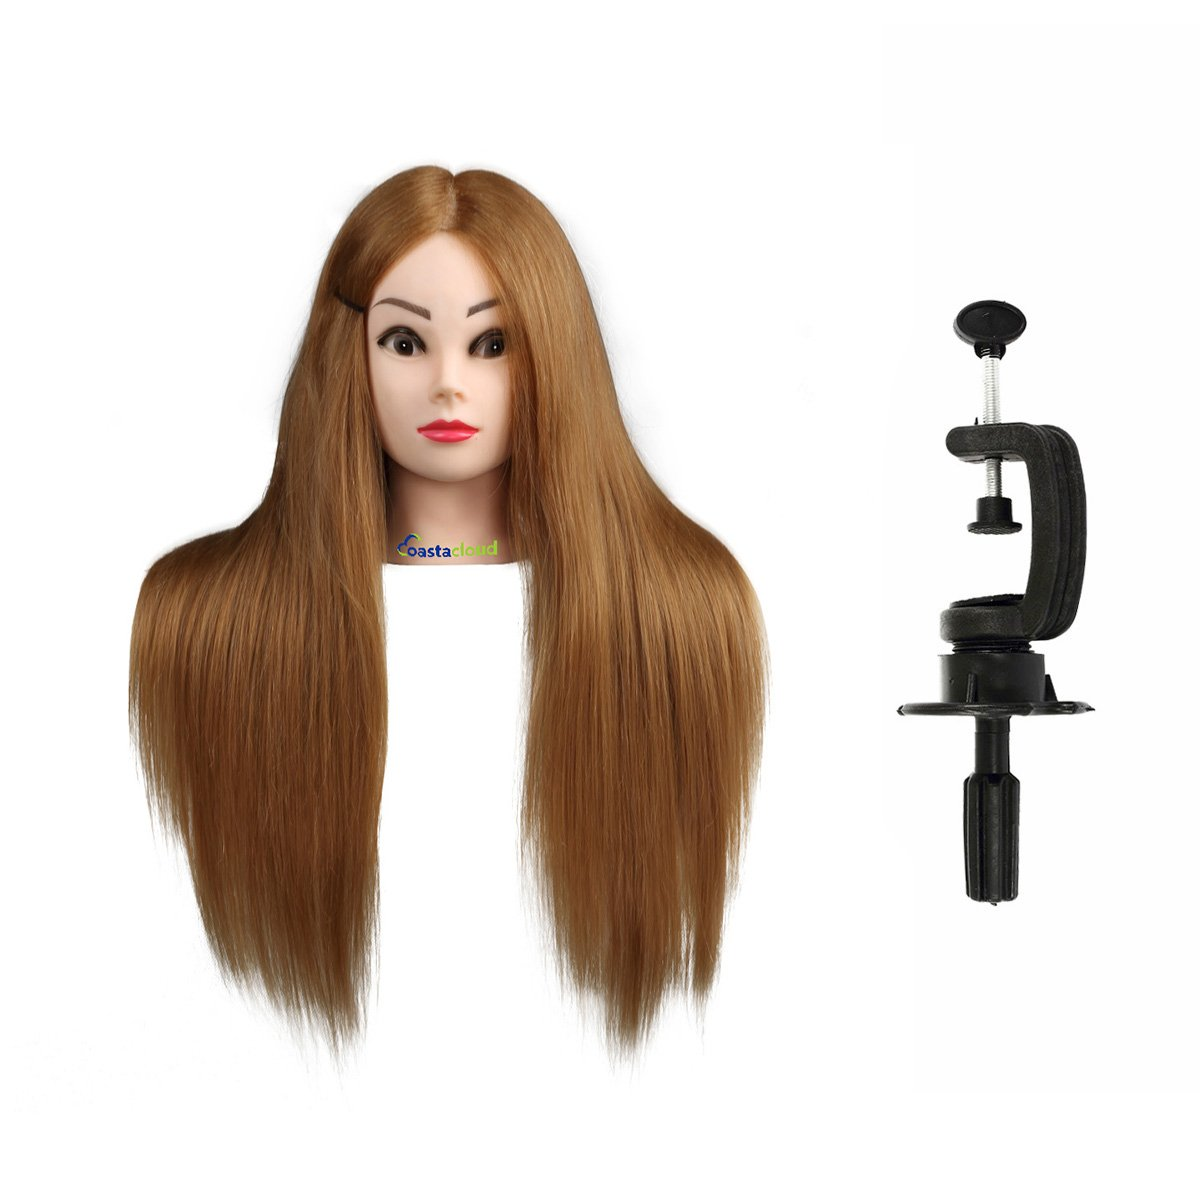 CoastaCloud 22 Professional Cosmetology Mannequin with 80% Real Human Hair Manikin Hairdressing Training Head Blond Color